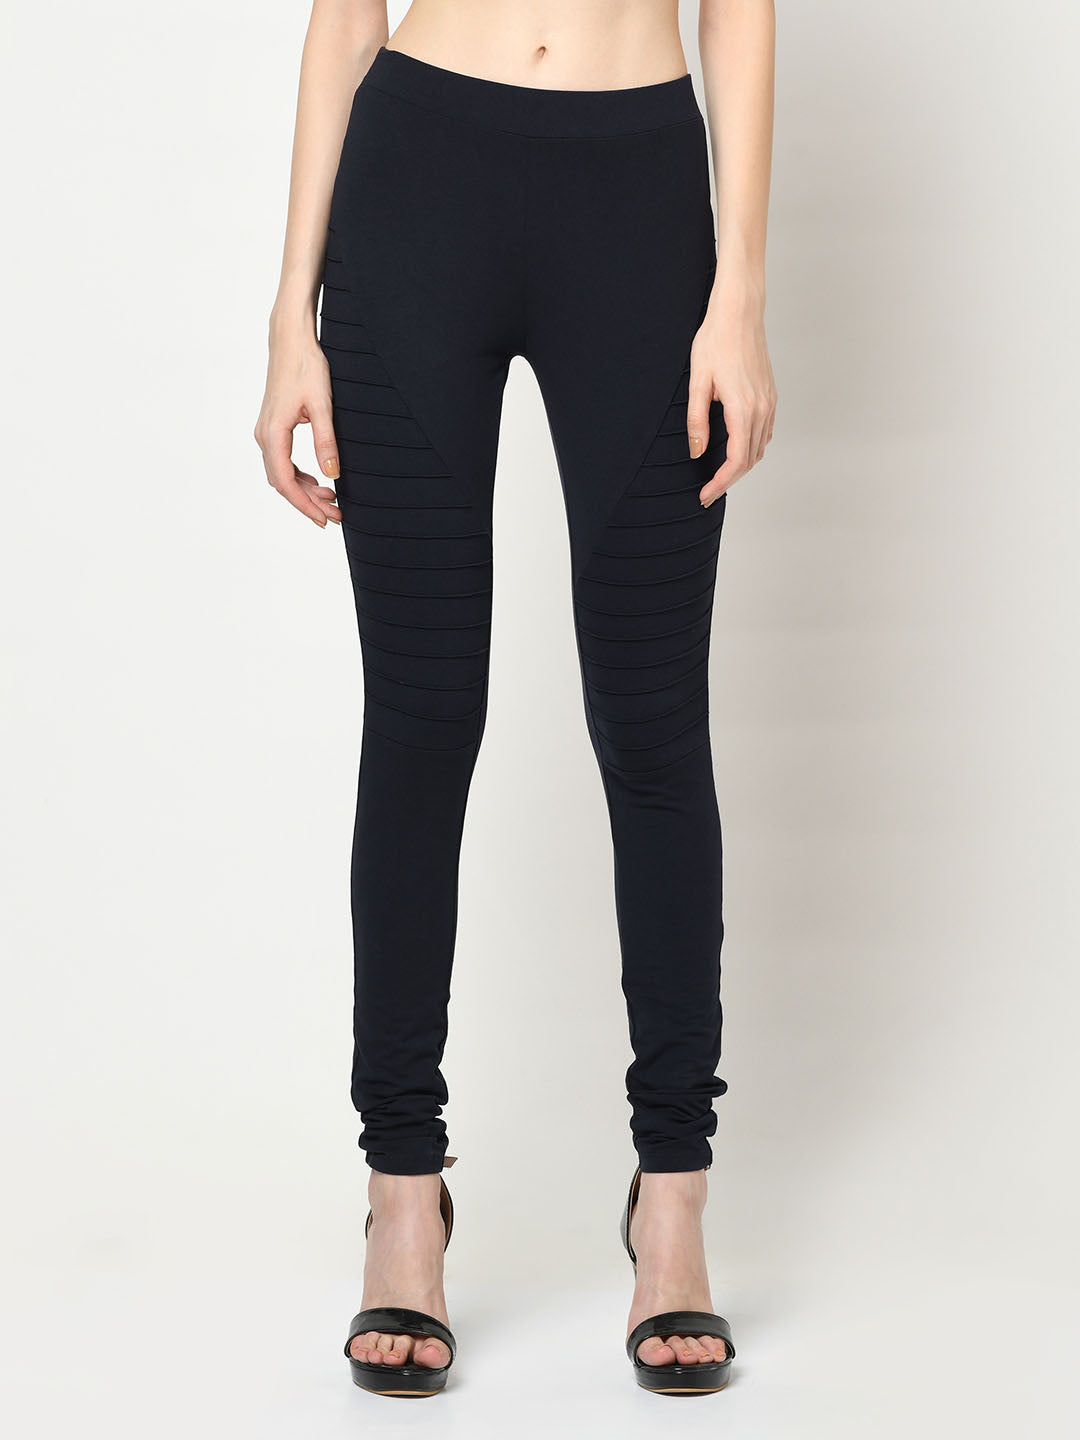 Navy Leggings With Side Ridges - Avsoy